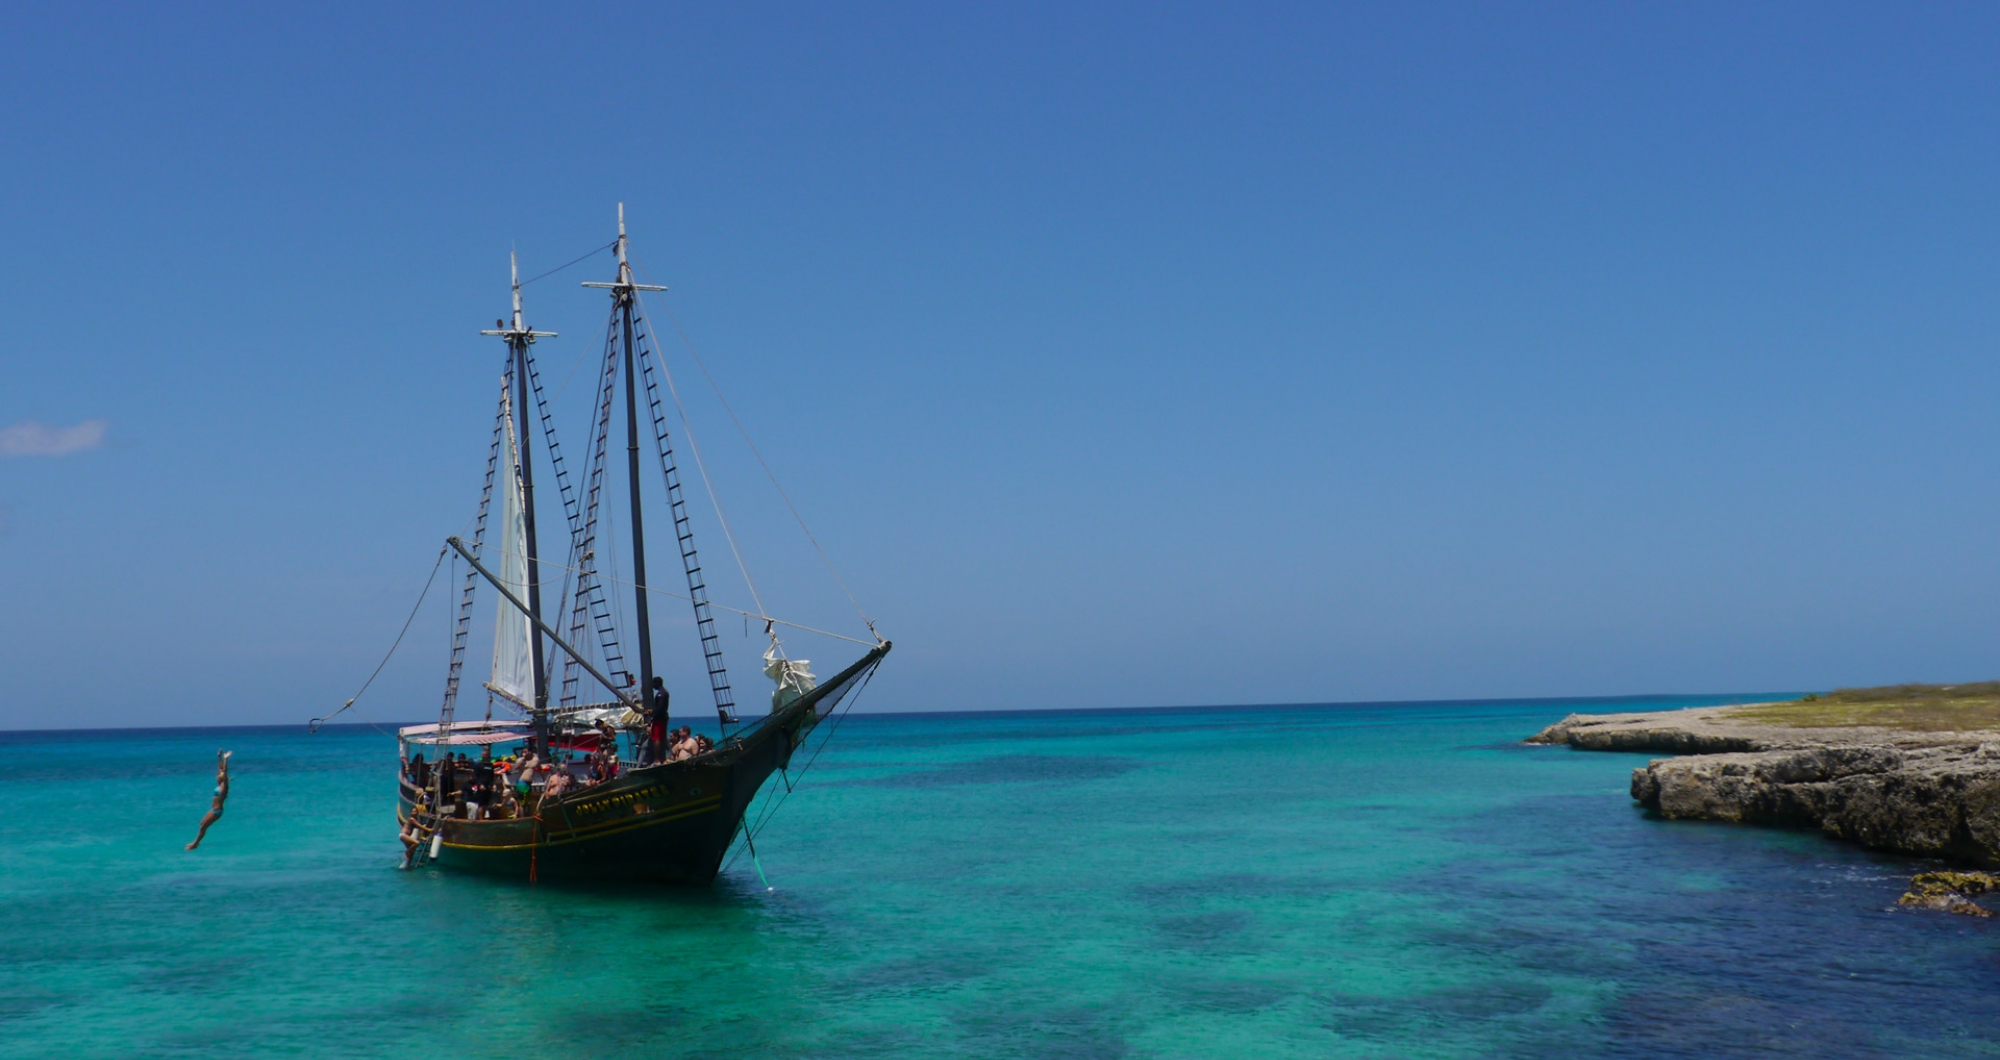 Jolly_pirate_boat_atracttion_aruba_destinations